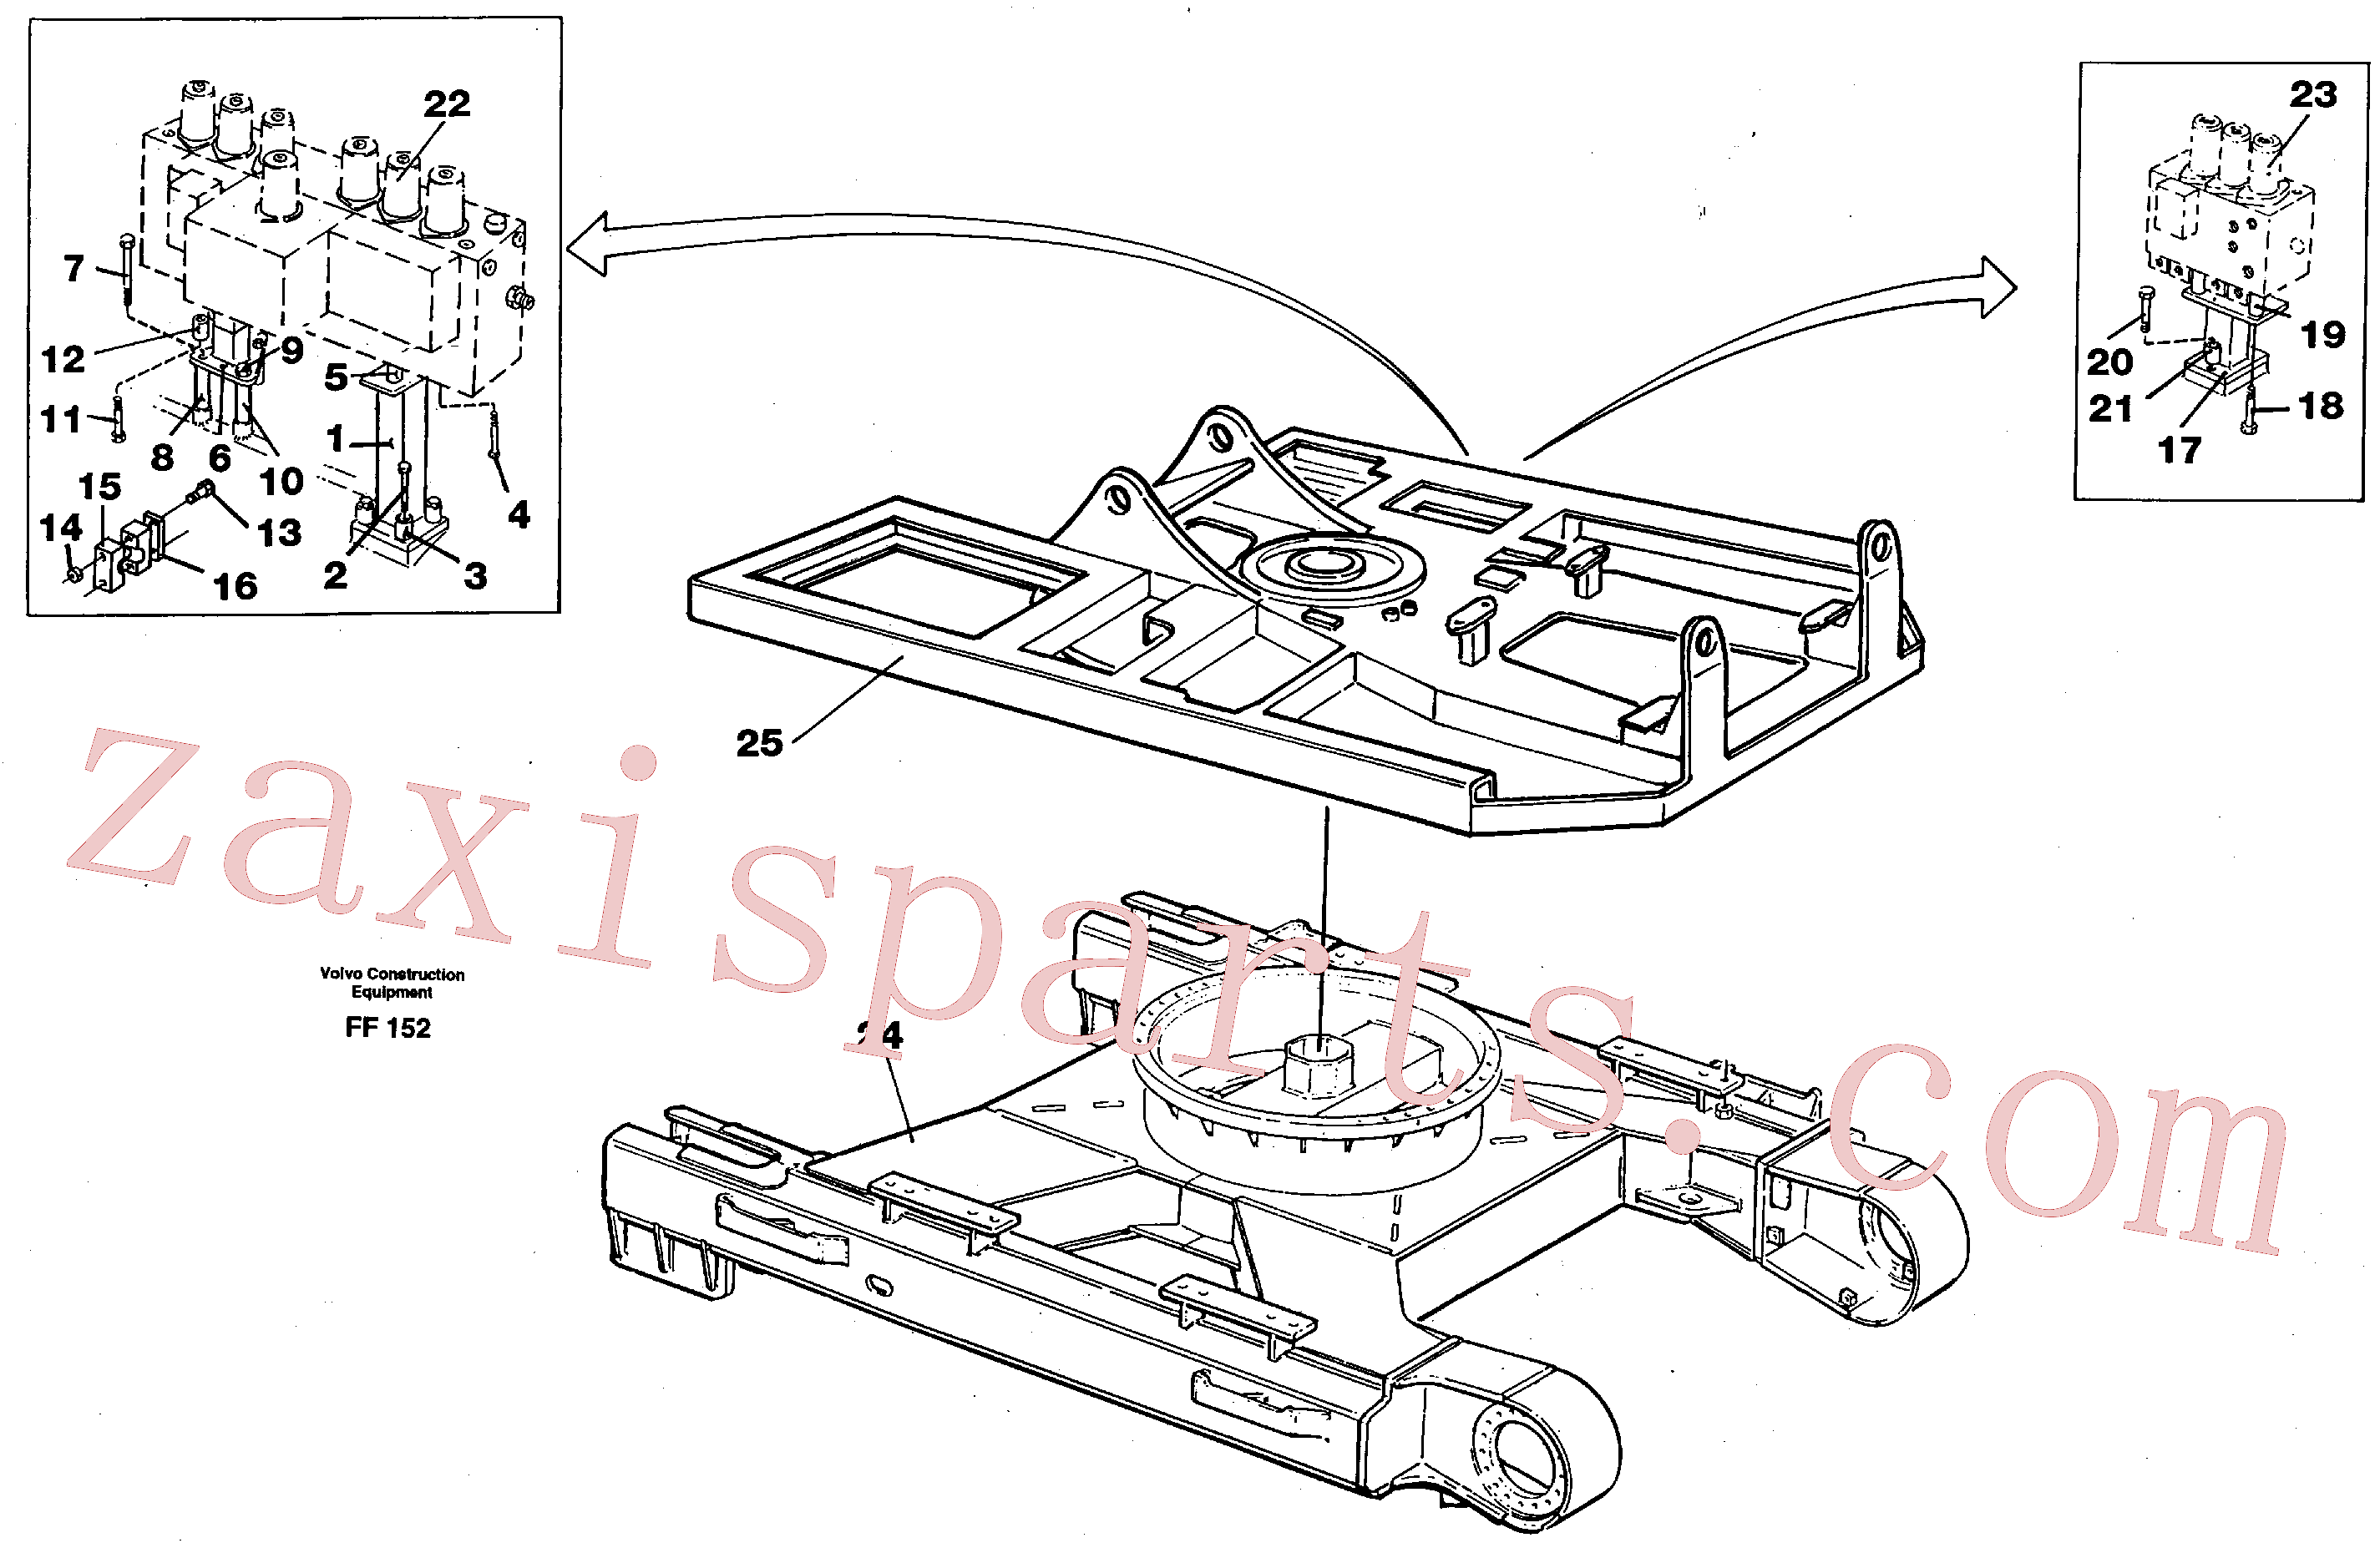 VOE970983 for Volvo Superstructure and undercarrige(FF152 assembly)